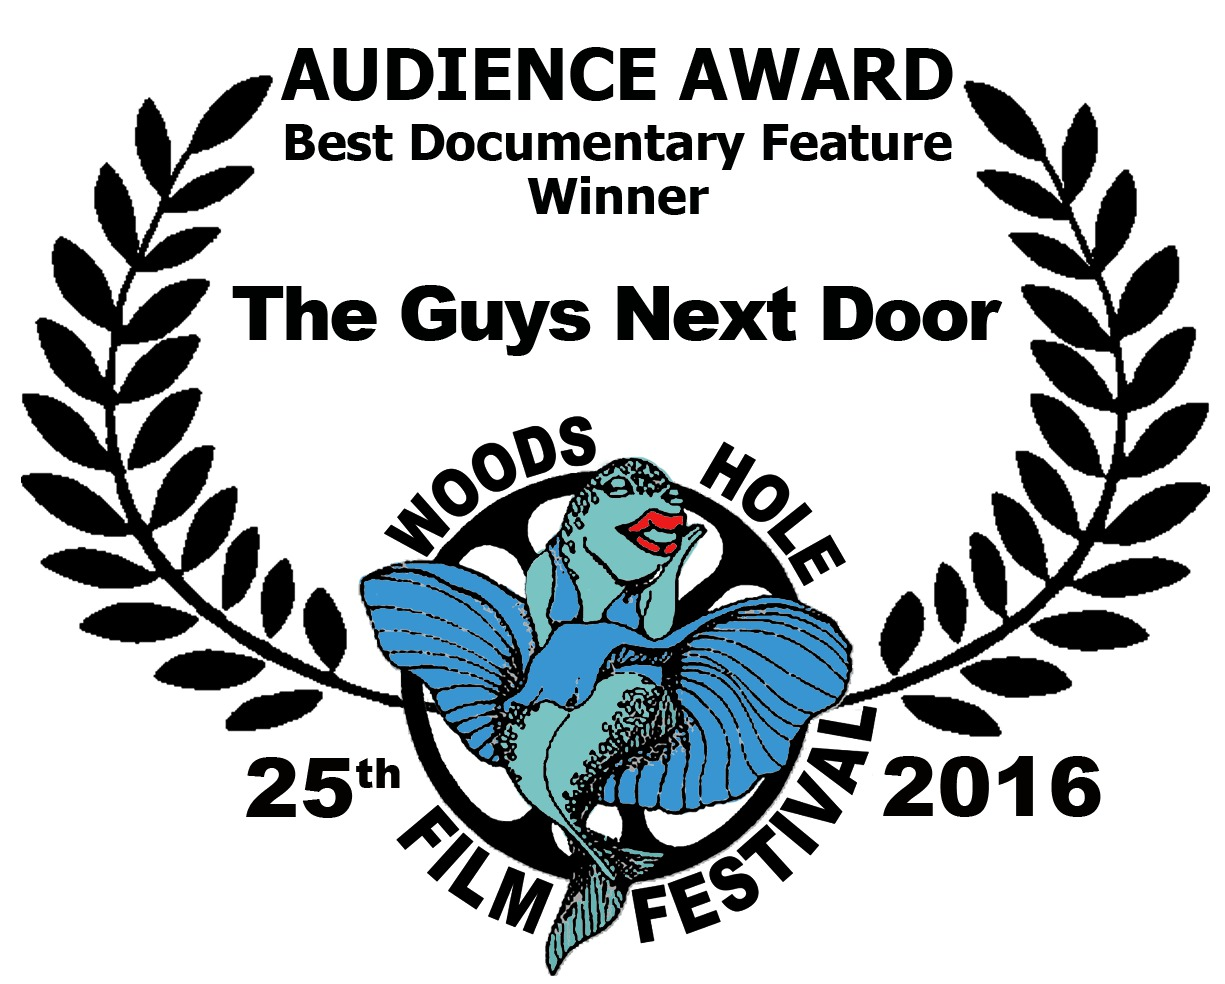 Audience Awards Best Documentary Feature Winner Woods Hole Film Festival